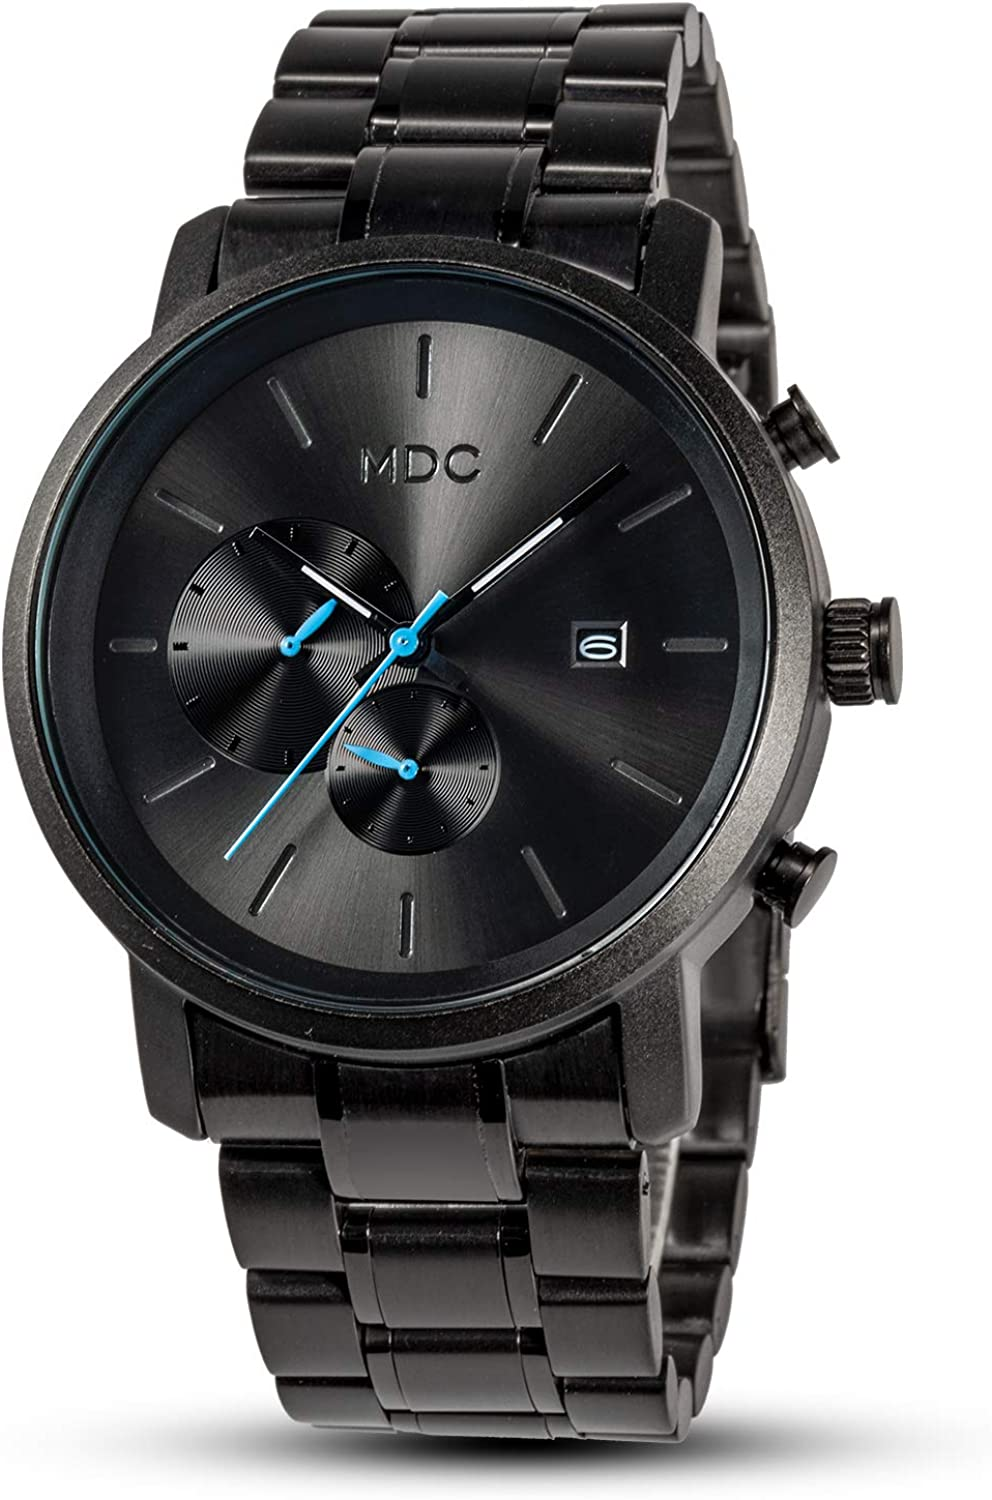 MDC Mens Fashion Watches Black Chronograph Quartz Wrist Watche